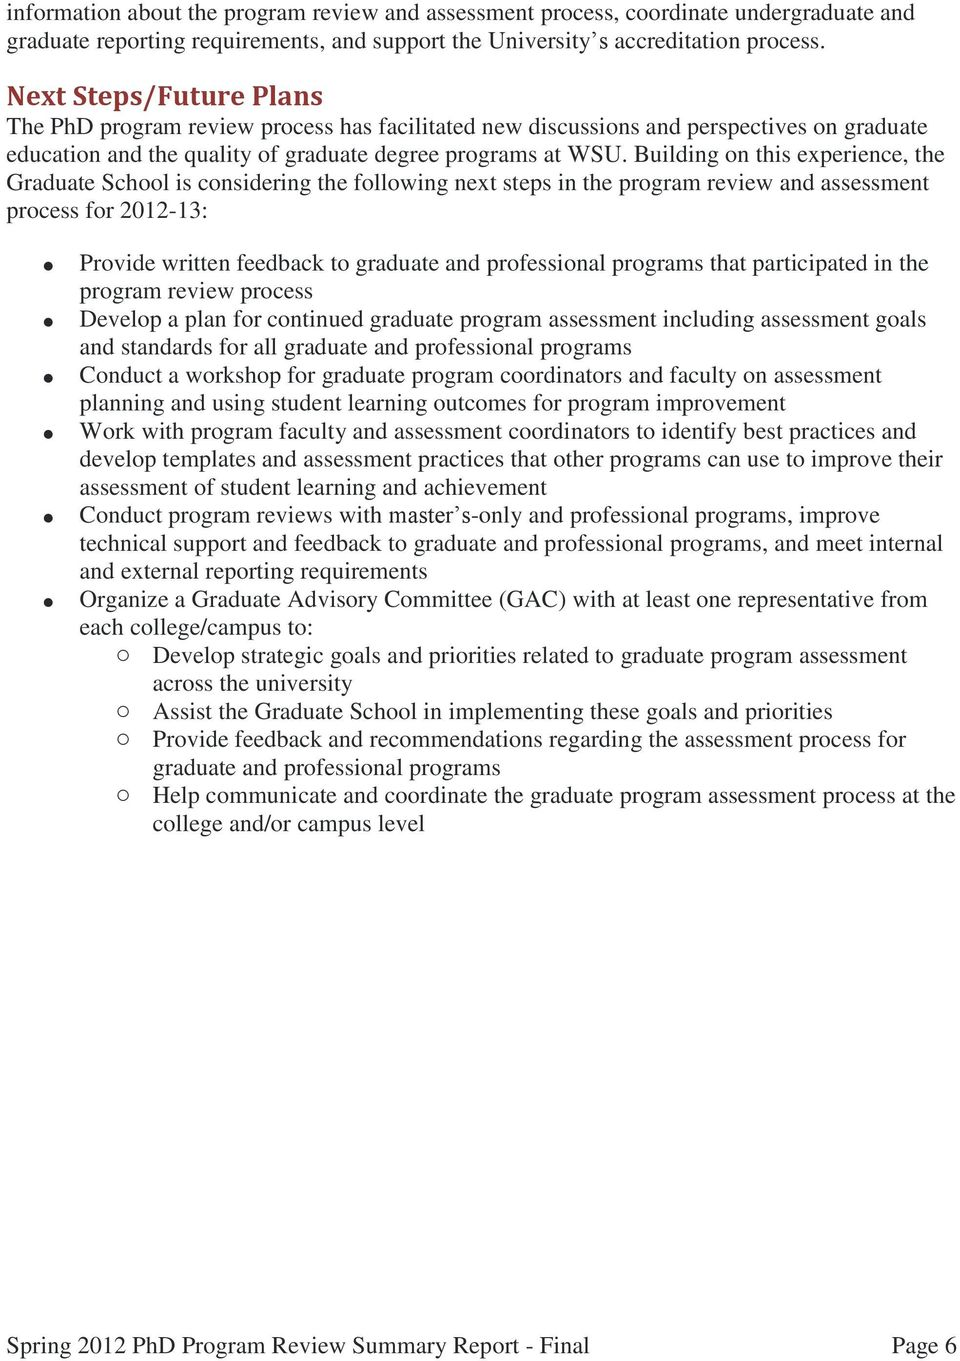 Building on this experience, the Graduate School is considering the following next steps in the program review and assessment process for 2012-13: Provide written feedback to graduate and